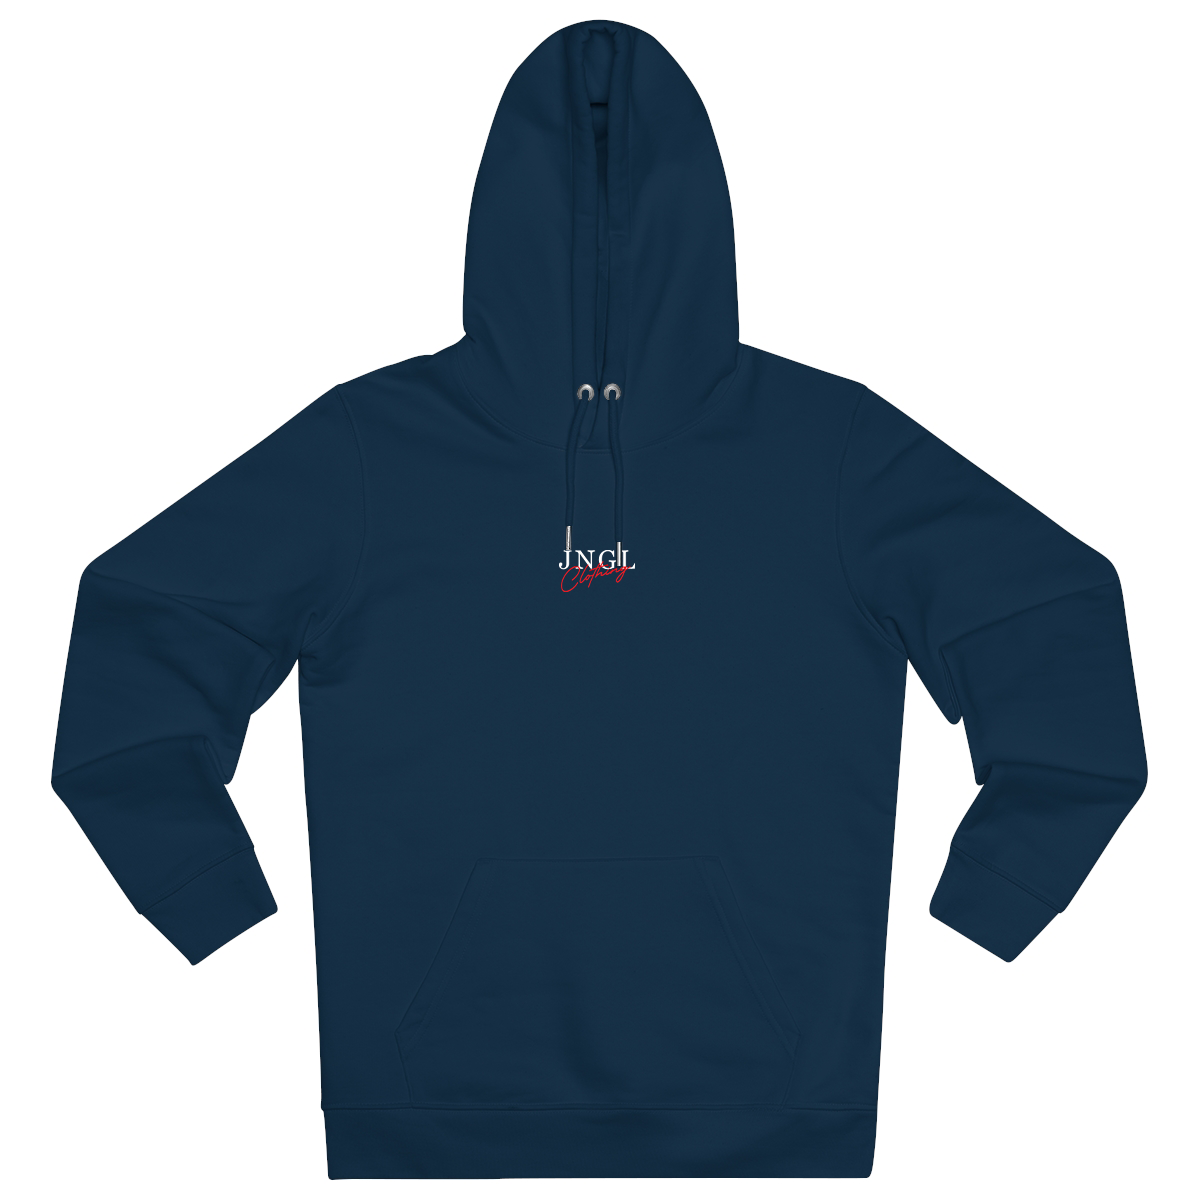 JNGL Clothing - Palm Tree hoodie // French Navy - Front (stock)